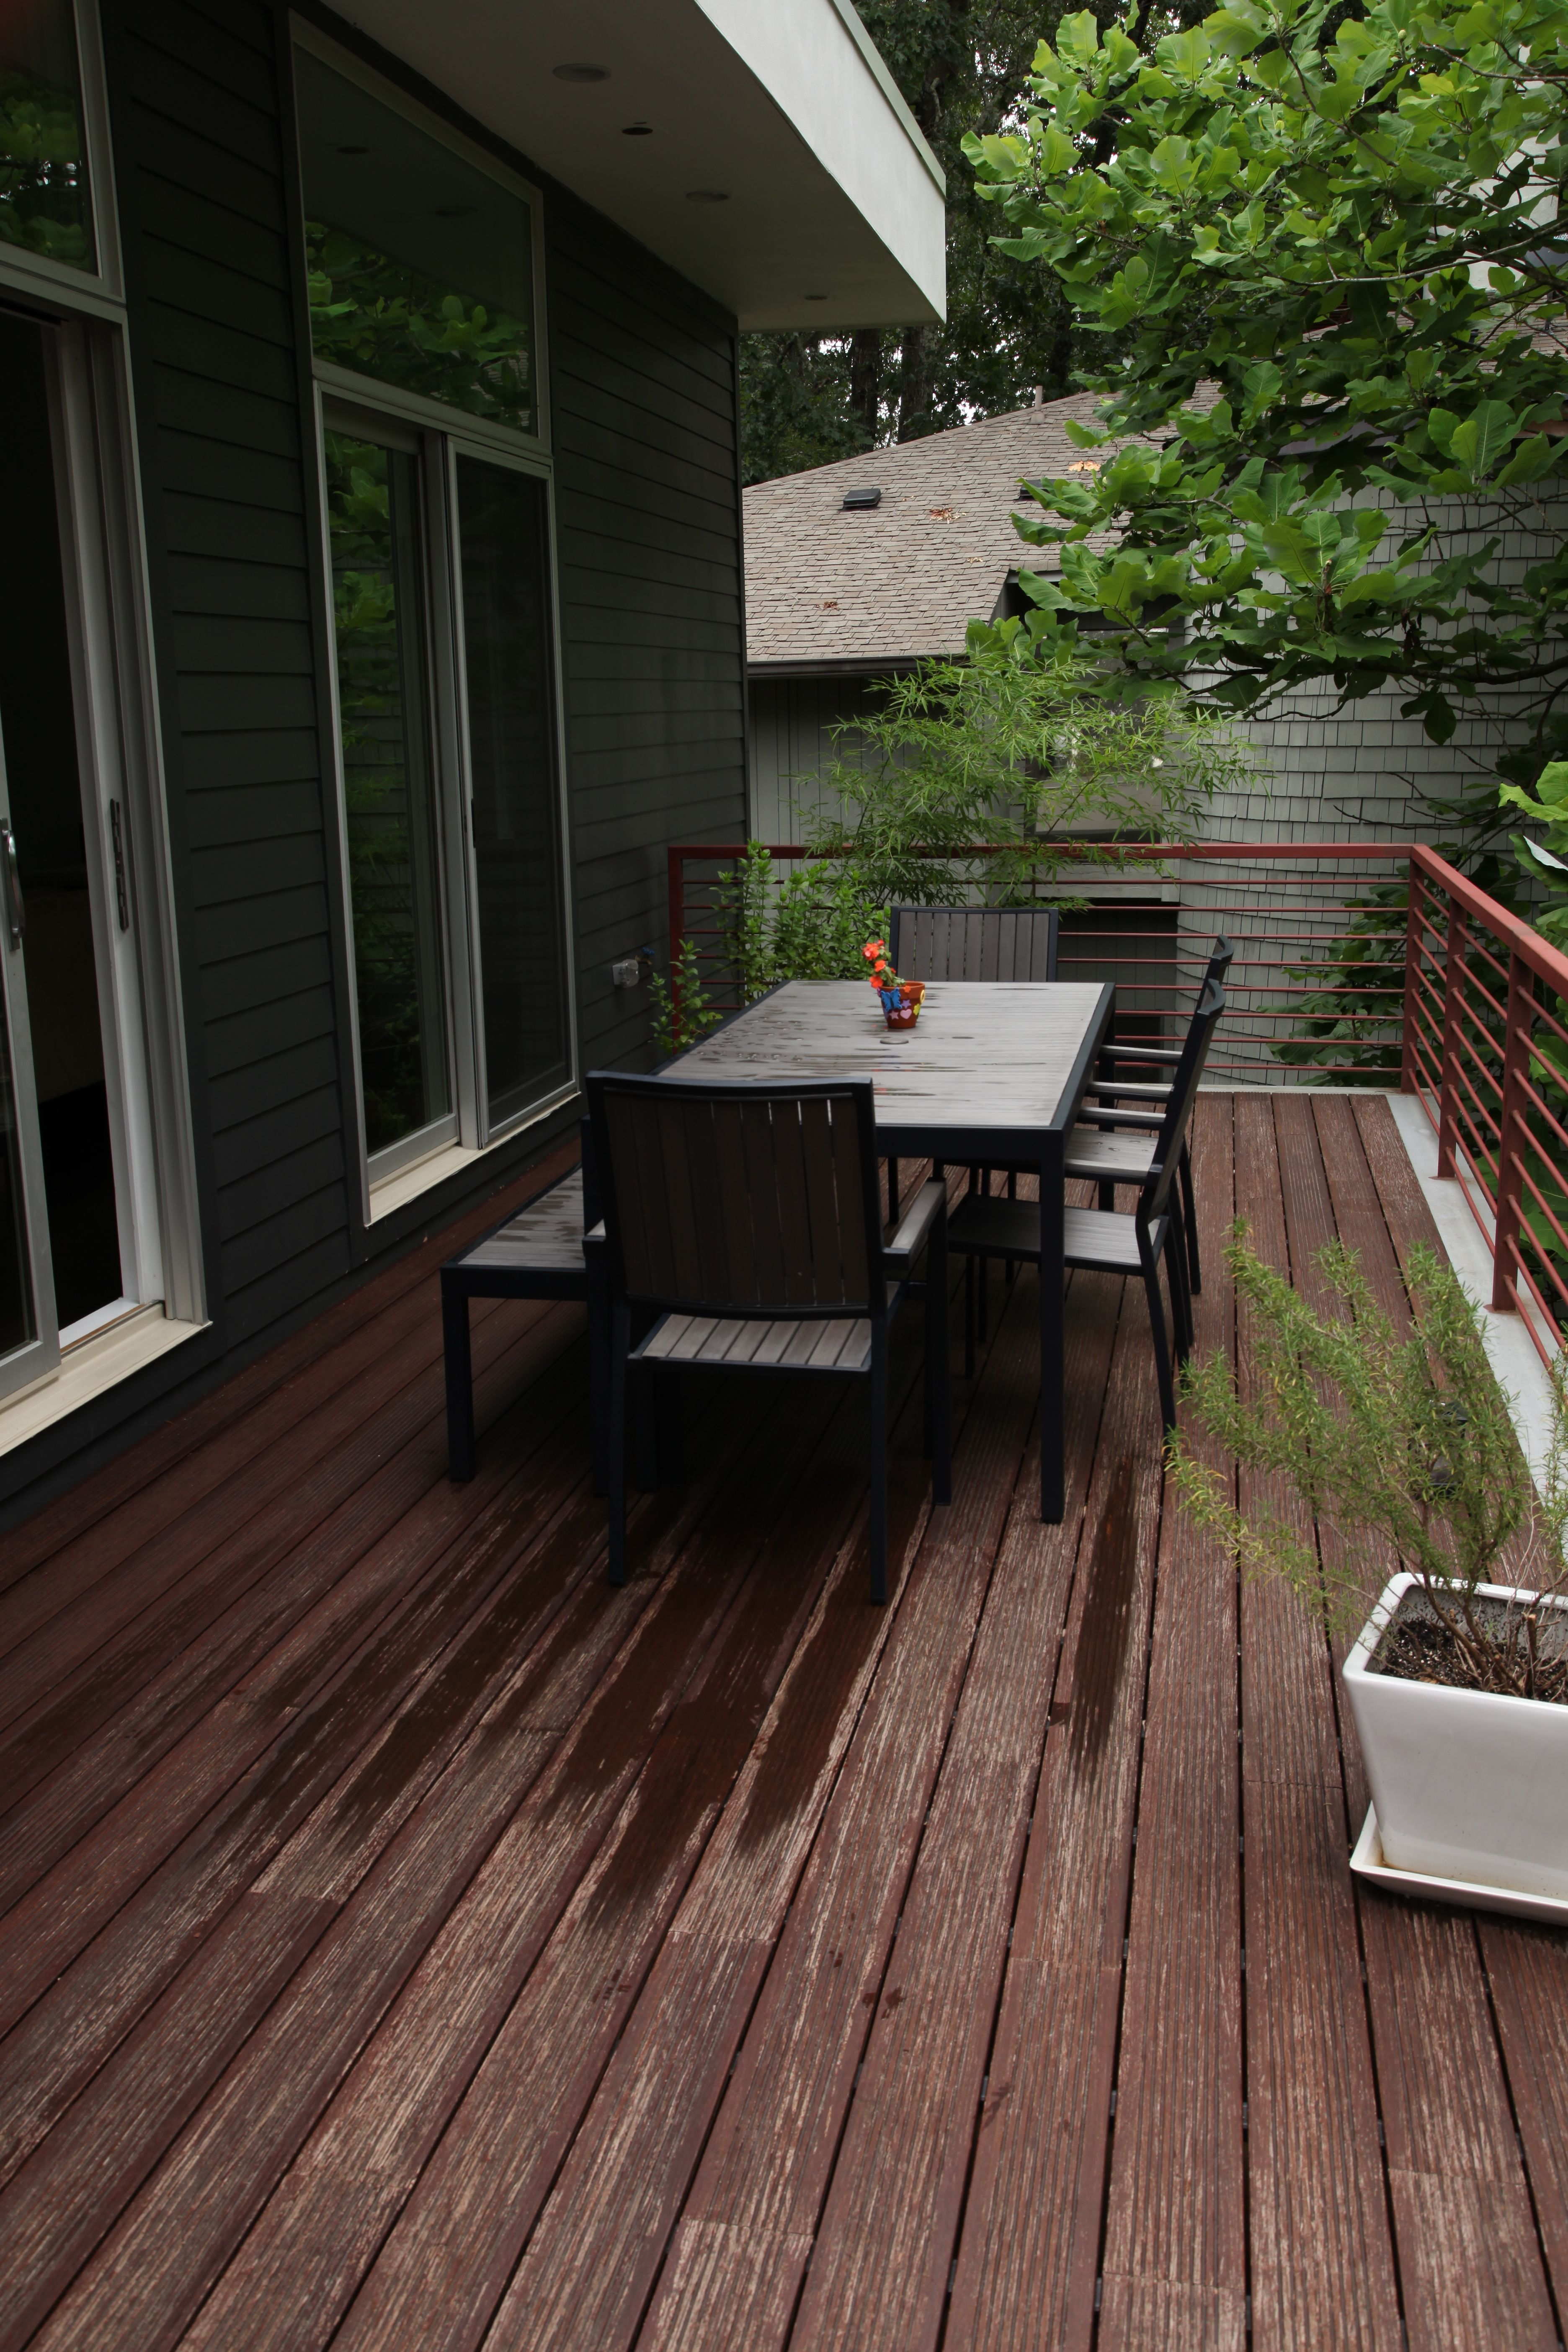 This Dasso Xtr Fused Bamboo Deck Is A Great Spot For Outdoor Entertaining Bamboo Decking Deck Porch Flooring